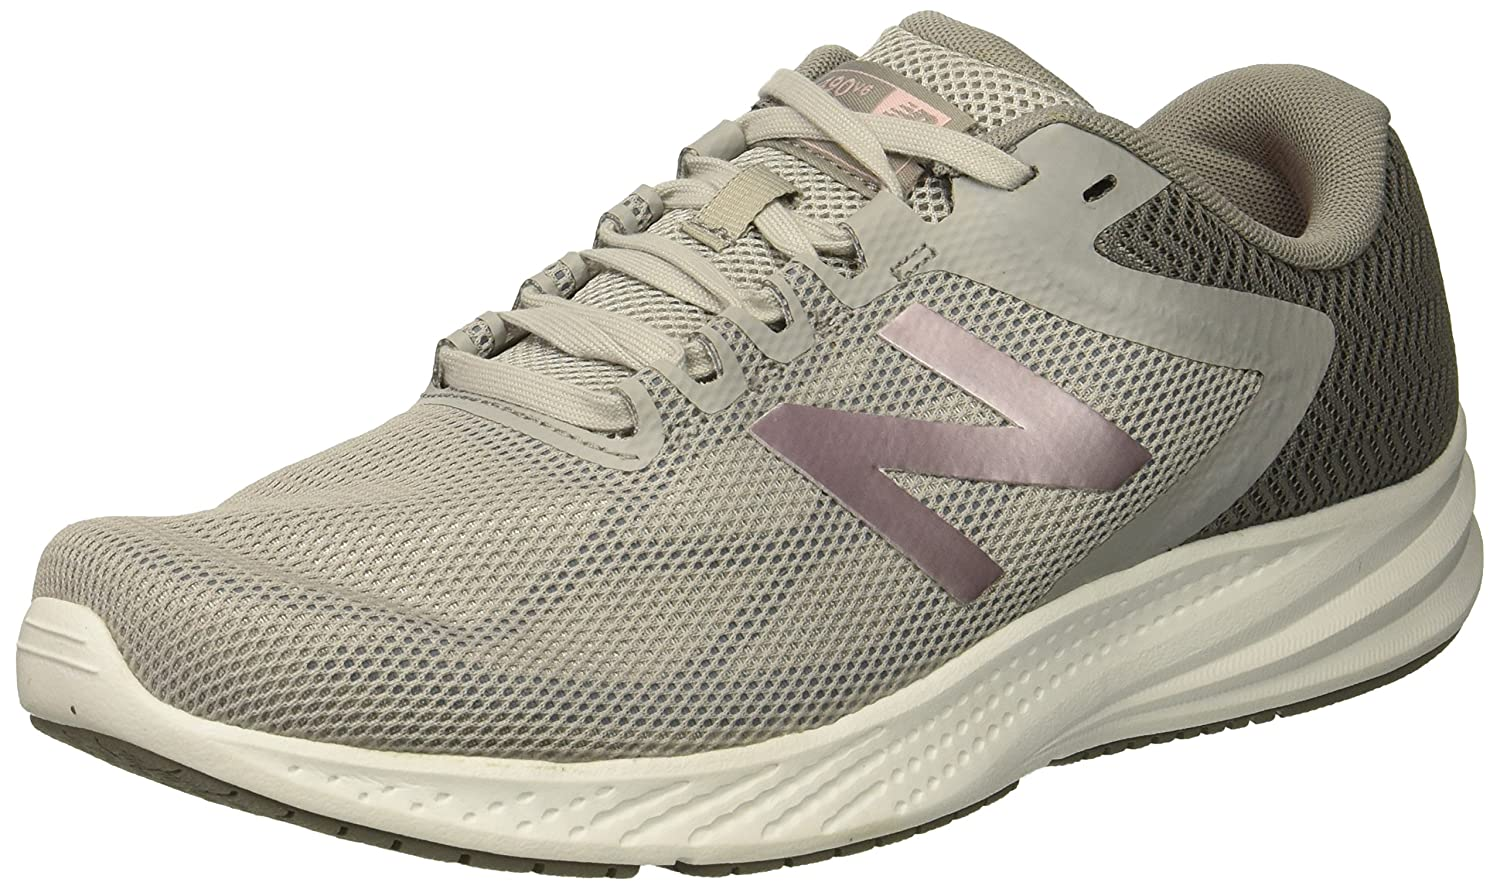 New Balance Wohommes 490v6 Cushioning Running chaussures, rain Cloud, 9.5 B US  -